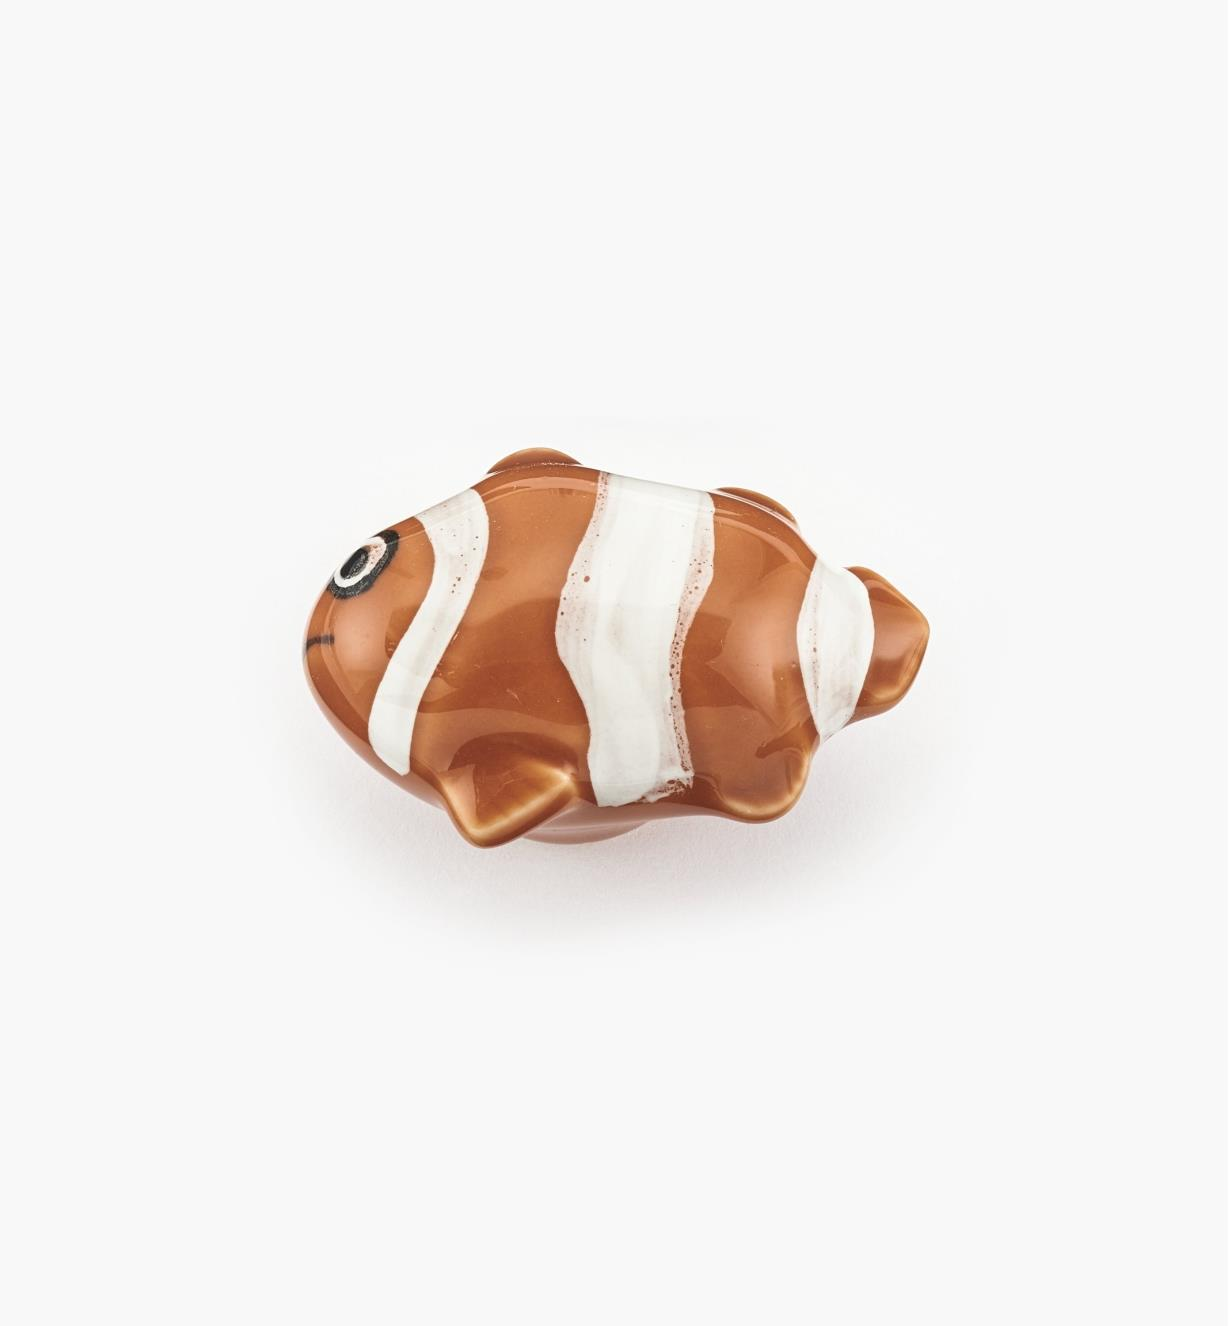 "00W5320 - 2"" x 1 1/2"" Clownfish Ceramic Knob, each"